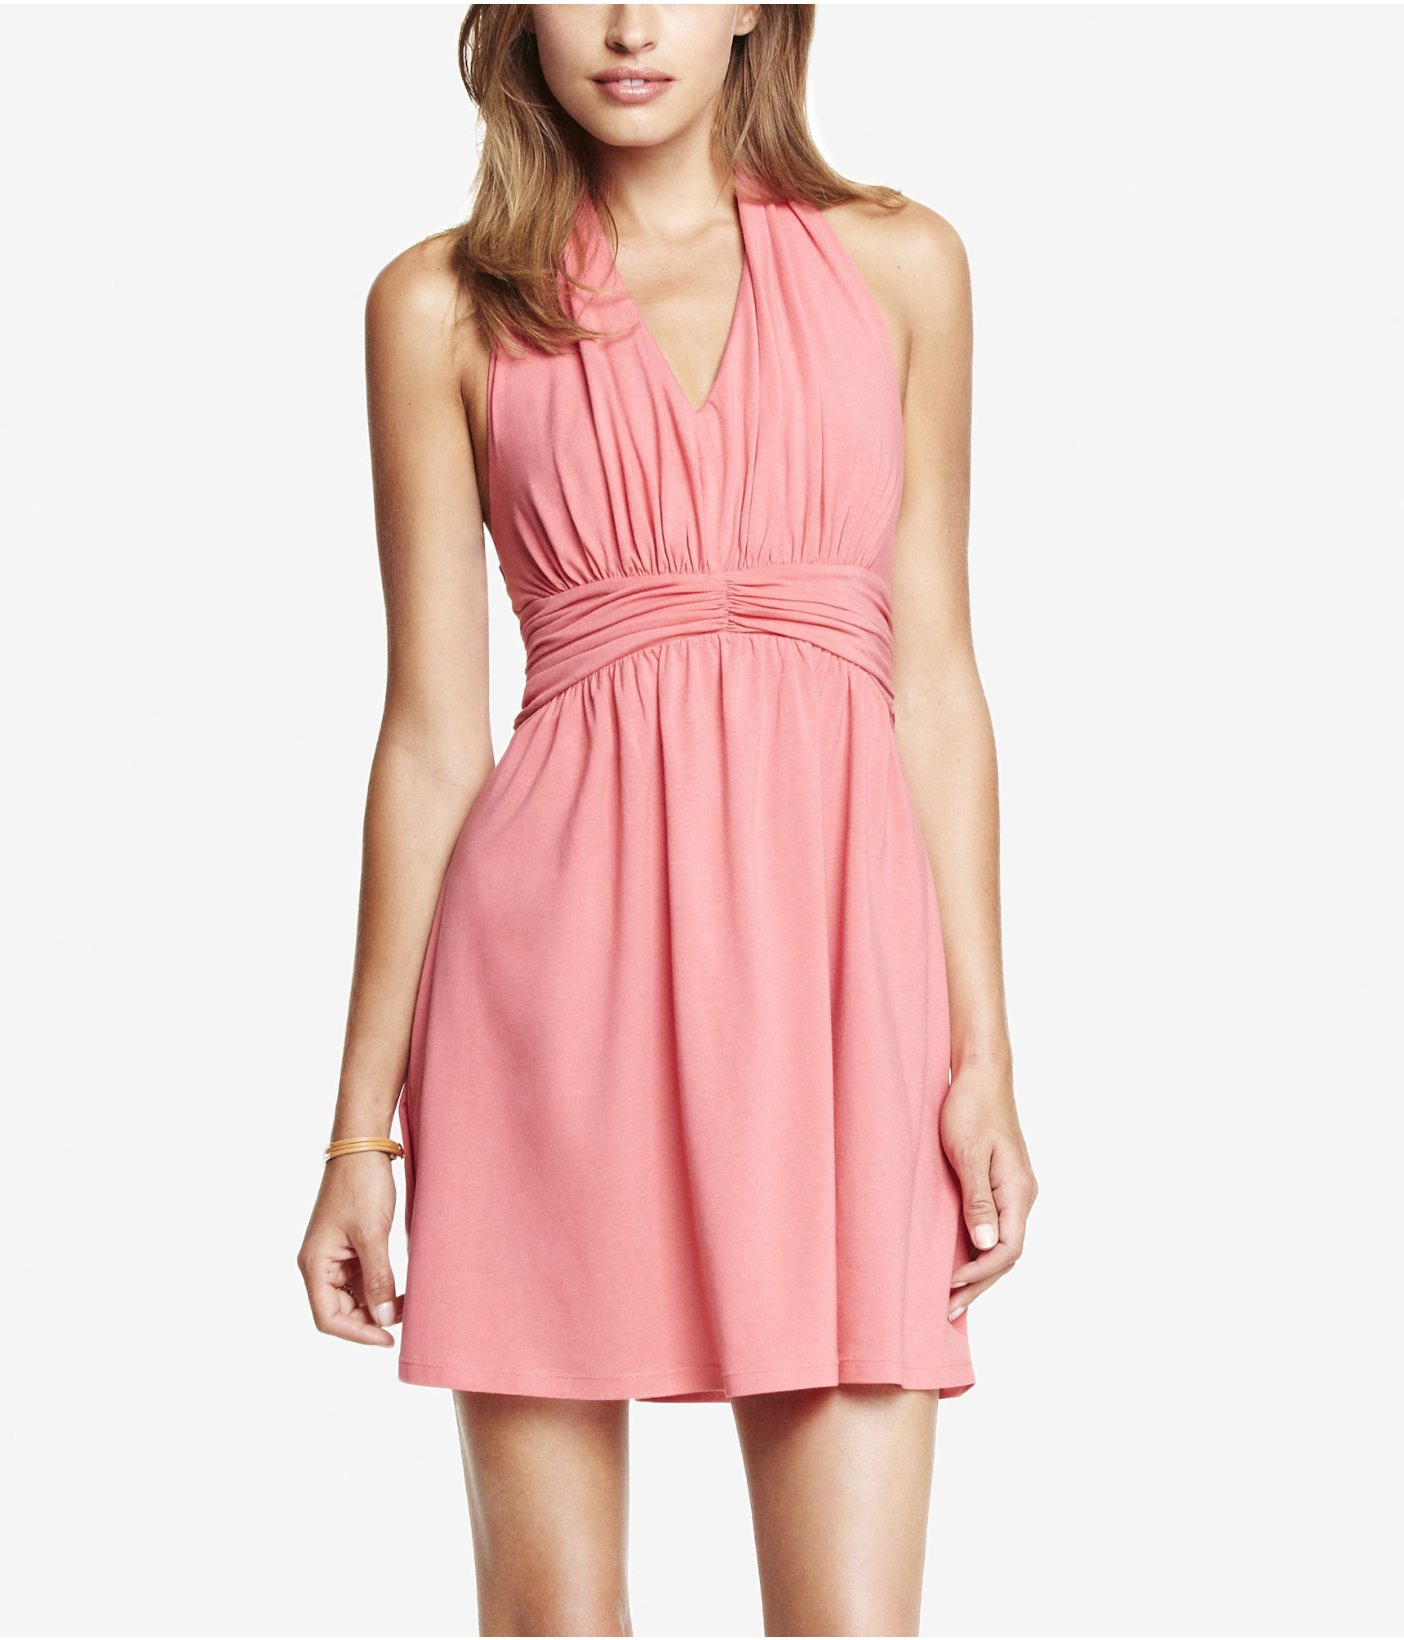 Express Light Pink Ruched Jersey Halter Dress in Pink | Lyst